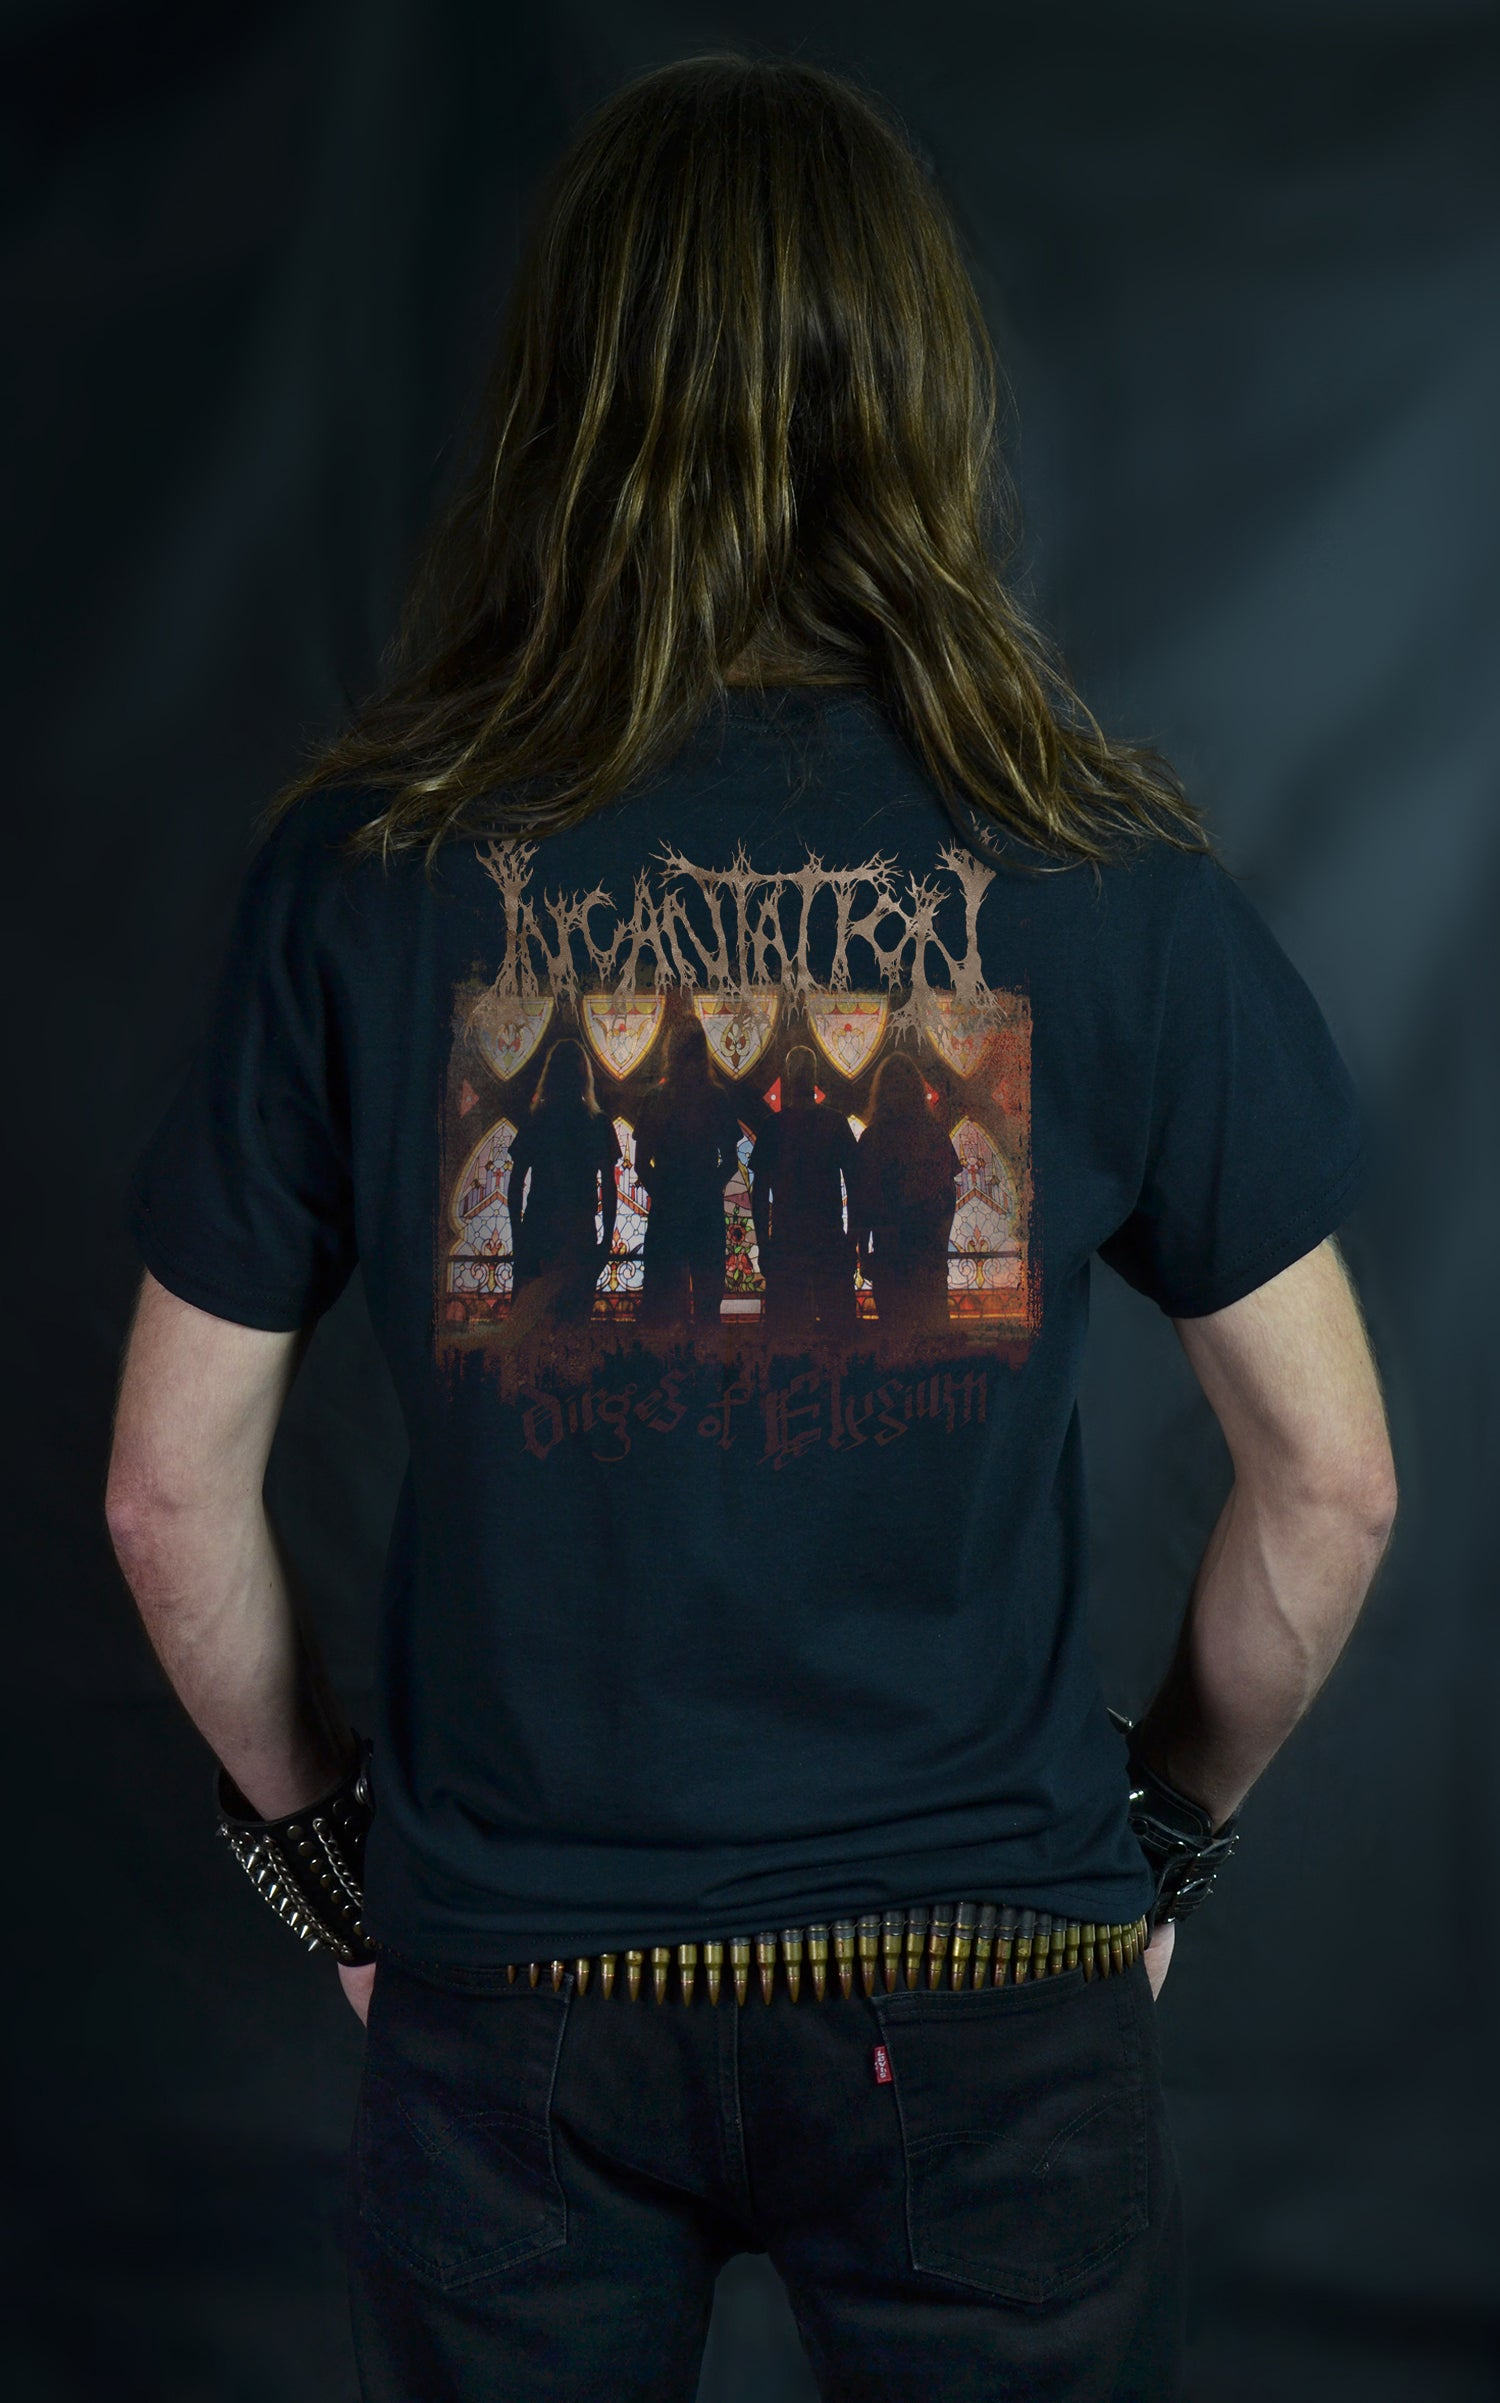 INCANTATION - Dirges of Elysium (T-SHIRT -OR- GIRLIE)